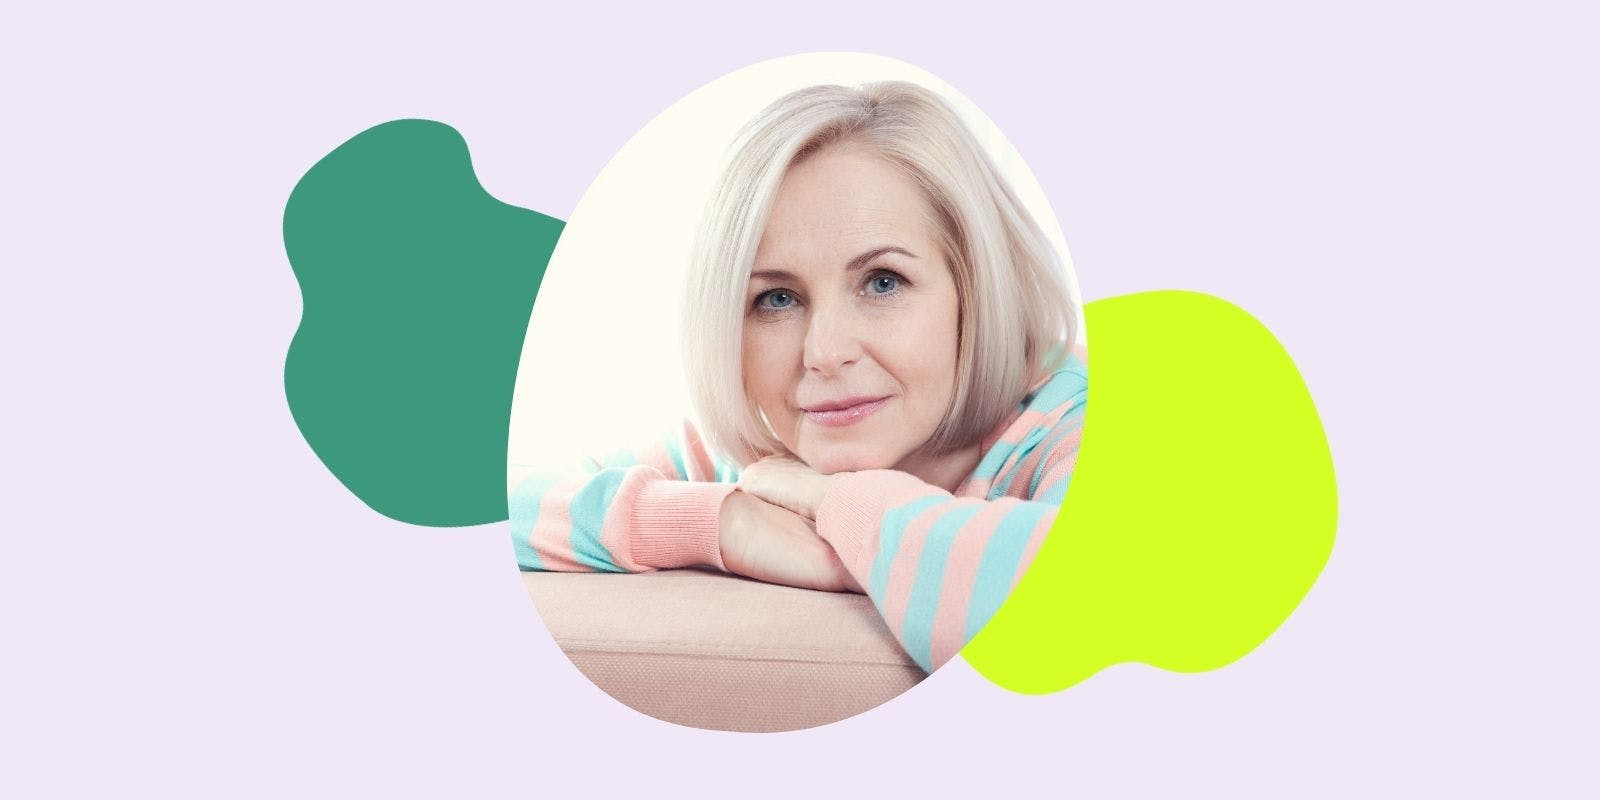 Menopause: Myths, Symptoms and How To Prepare At Any Age